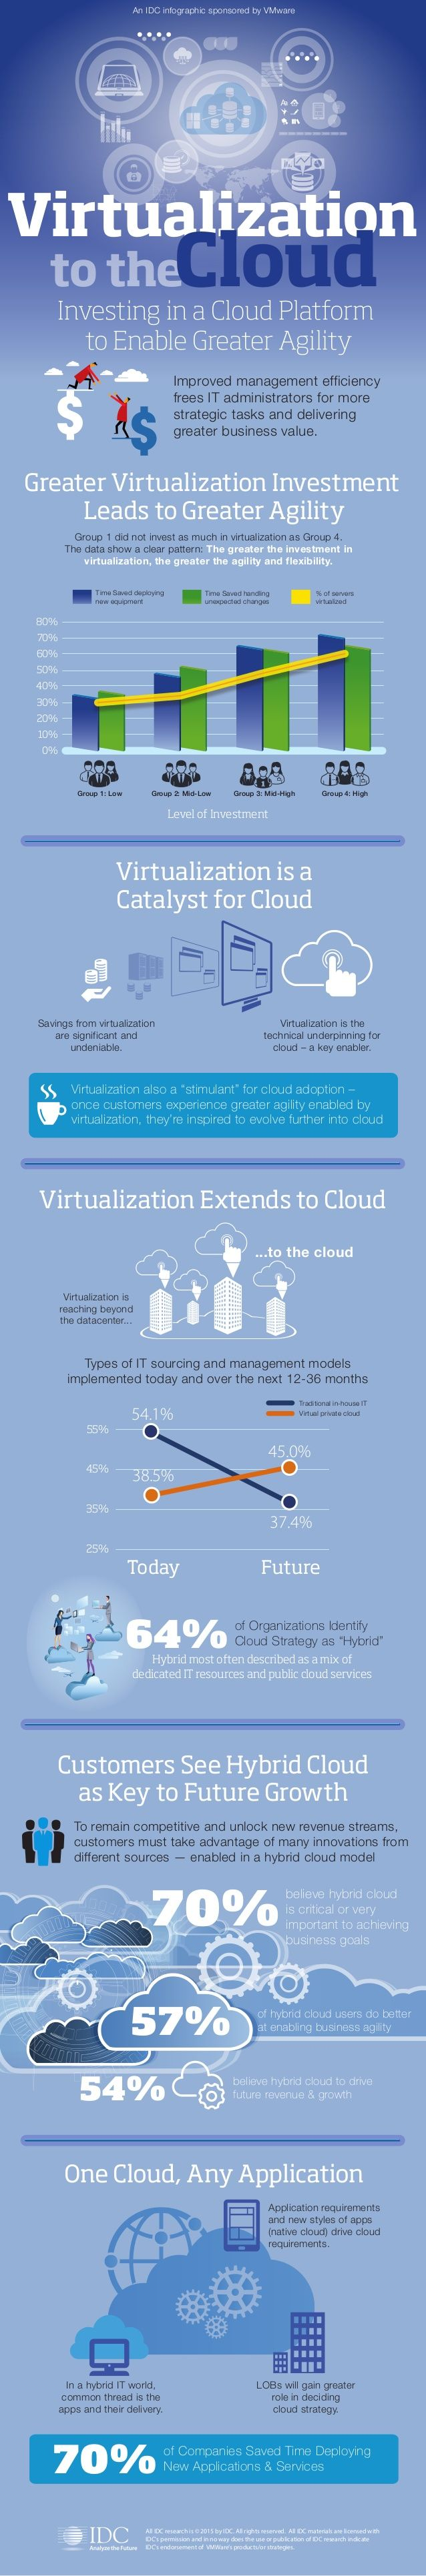 [Infographic] Survey says: more businesses are adopting the hybrid cloud | Tribal Knowledge - VMware Blogs